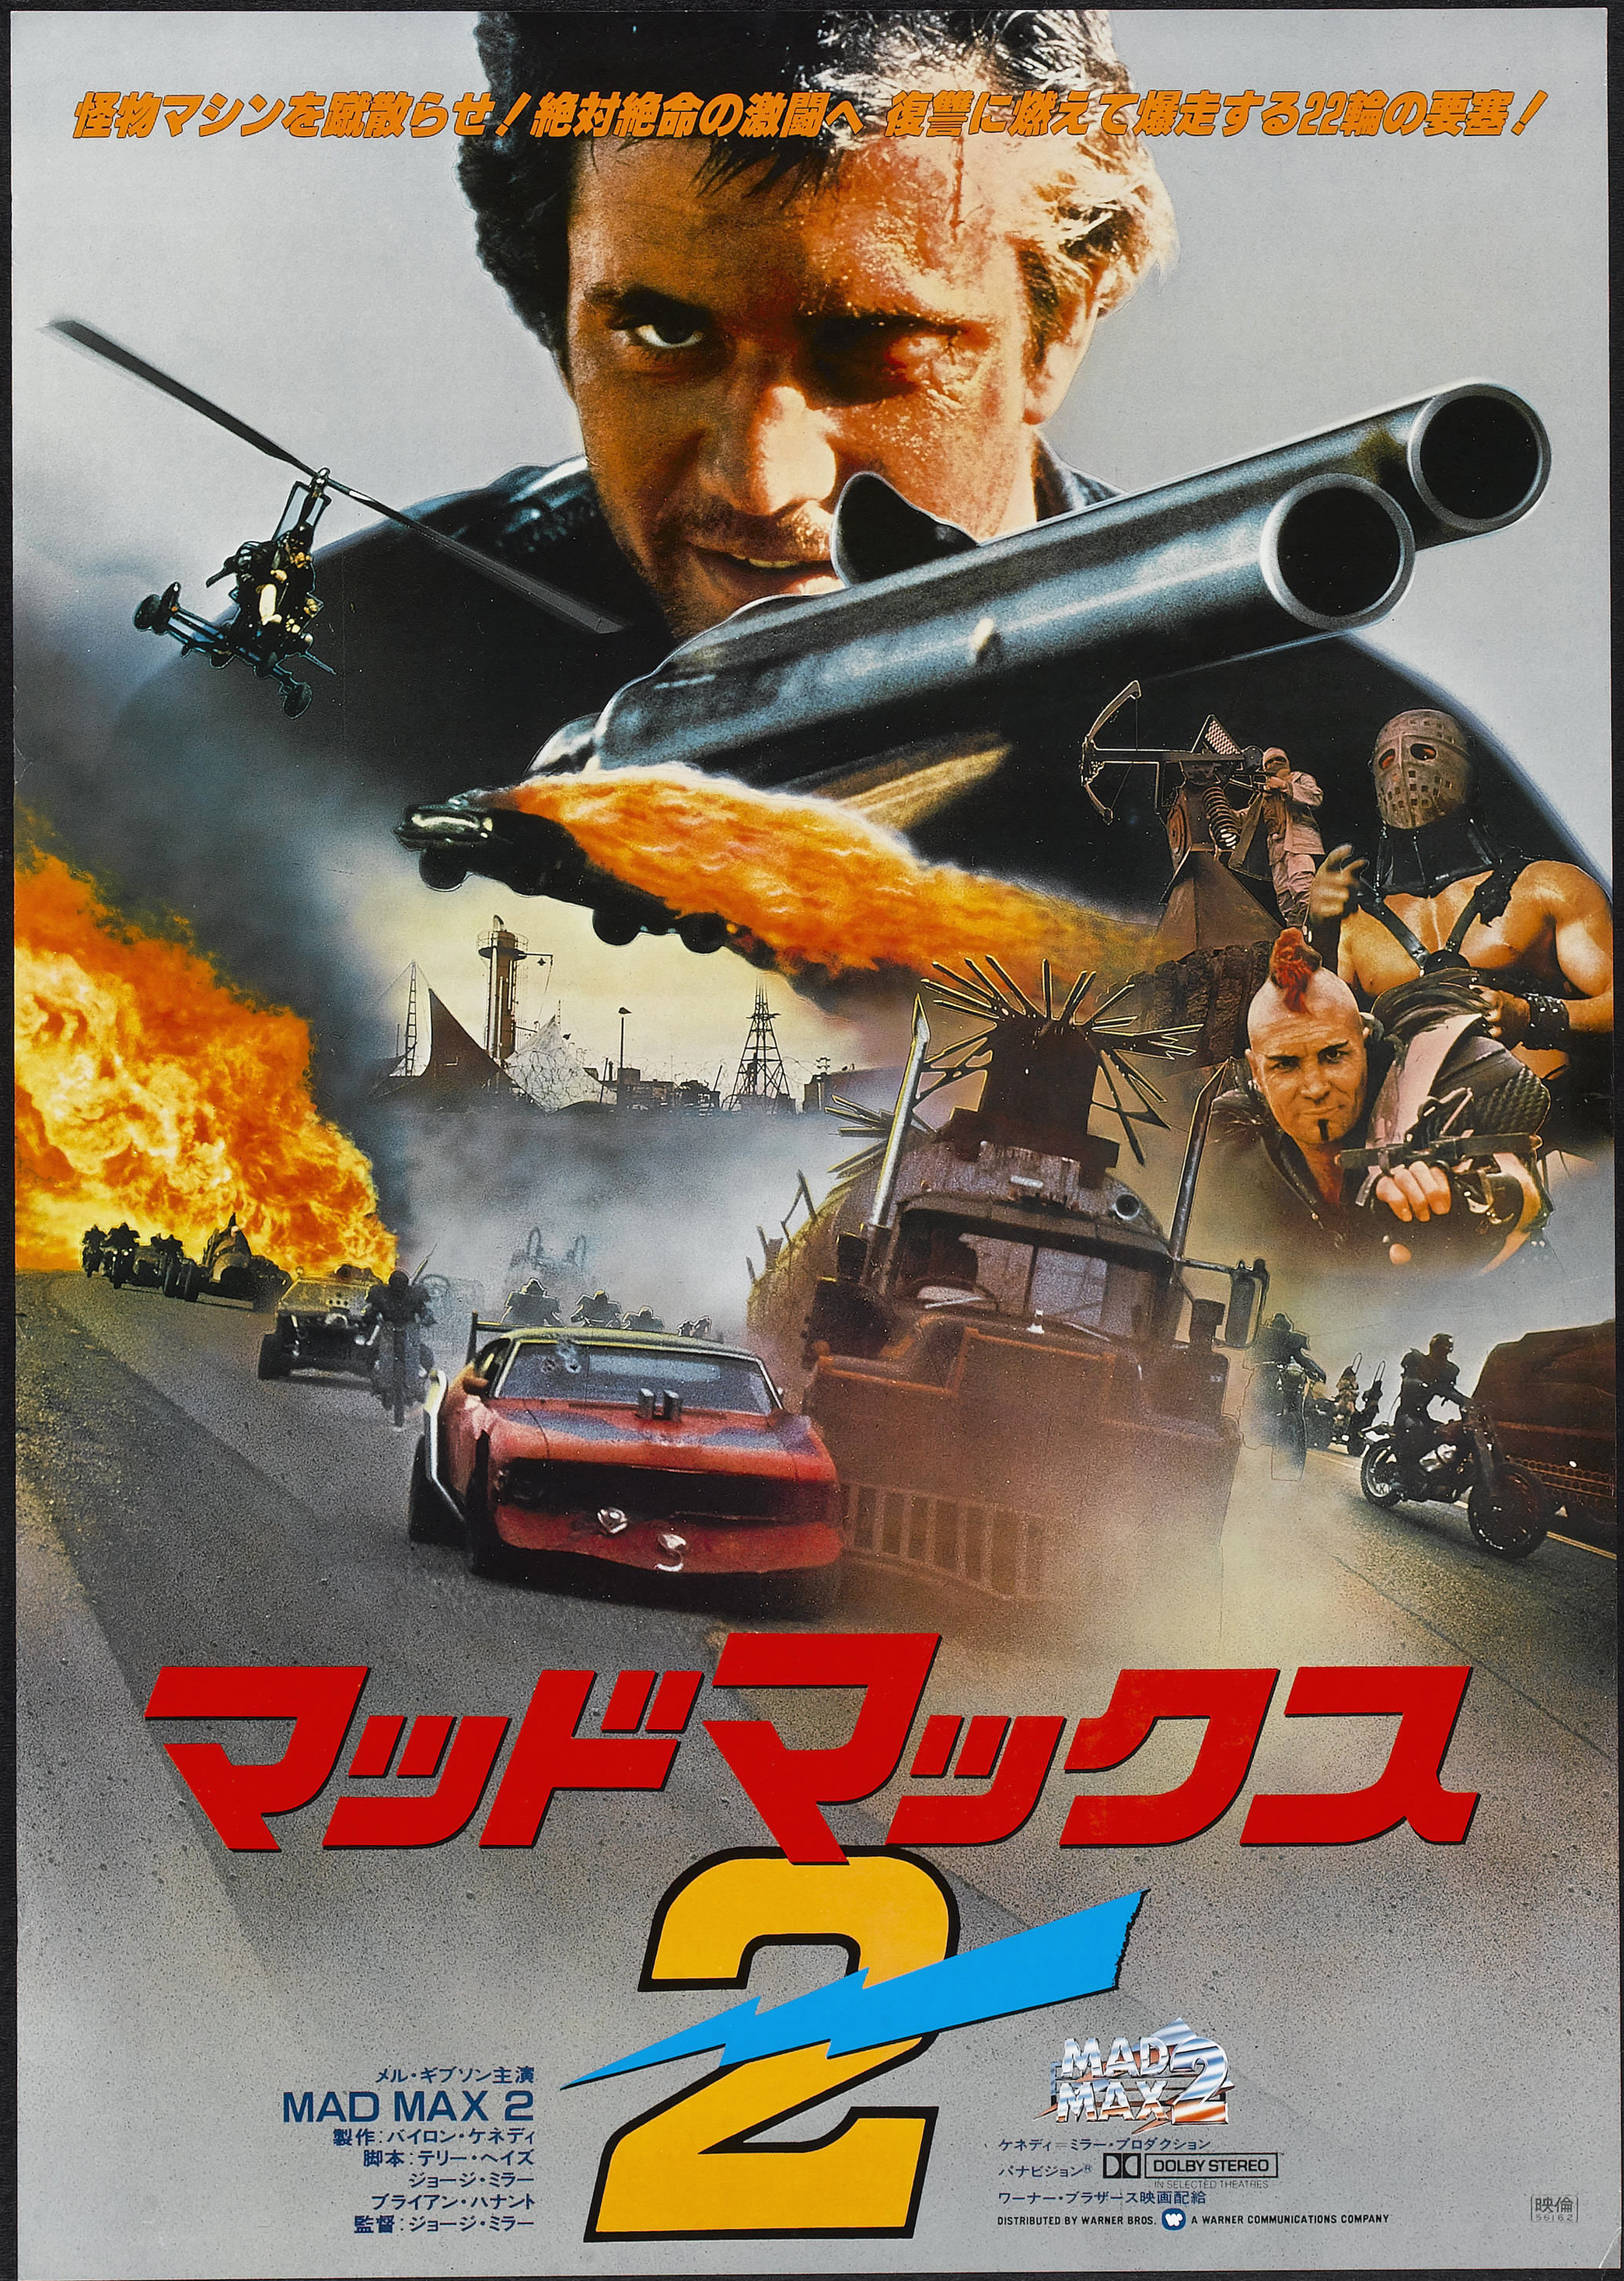 Polster Max Madmaxmovies View Topic Japanese Poster